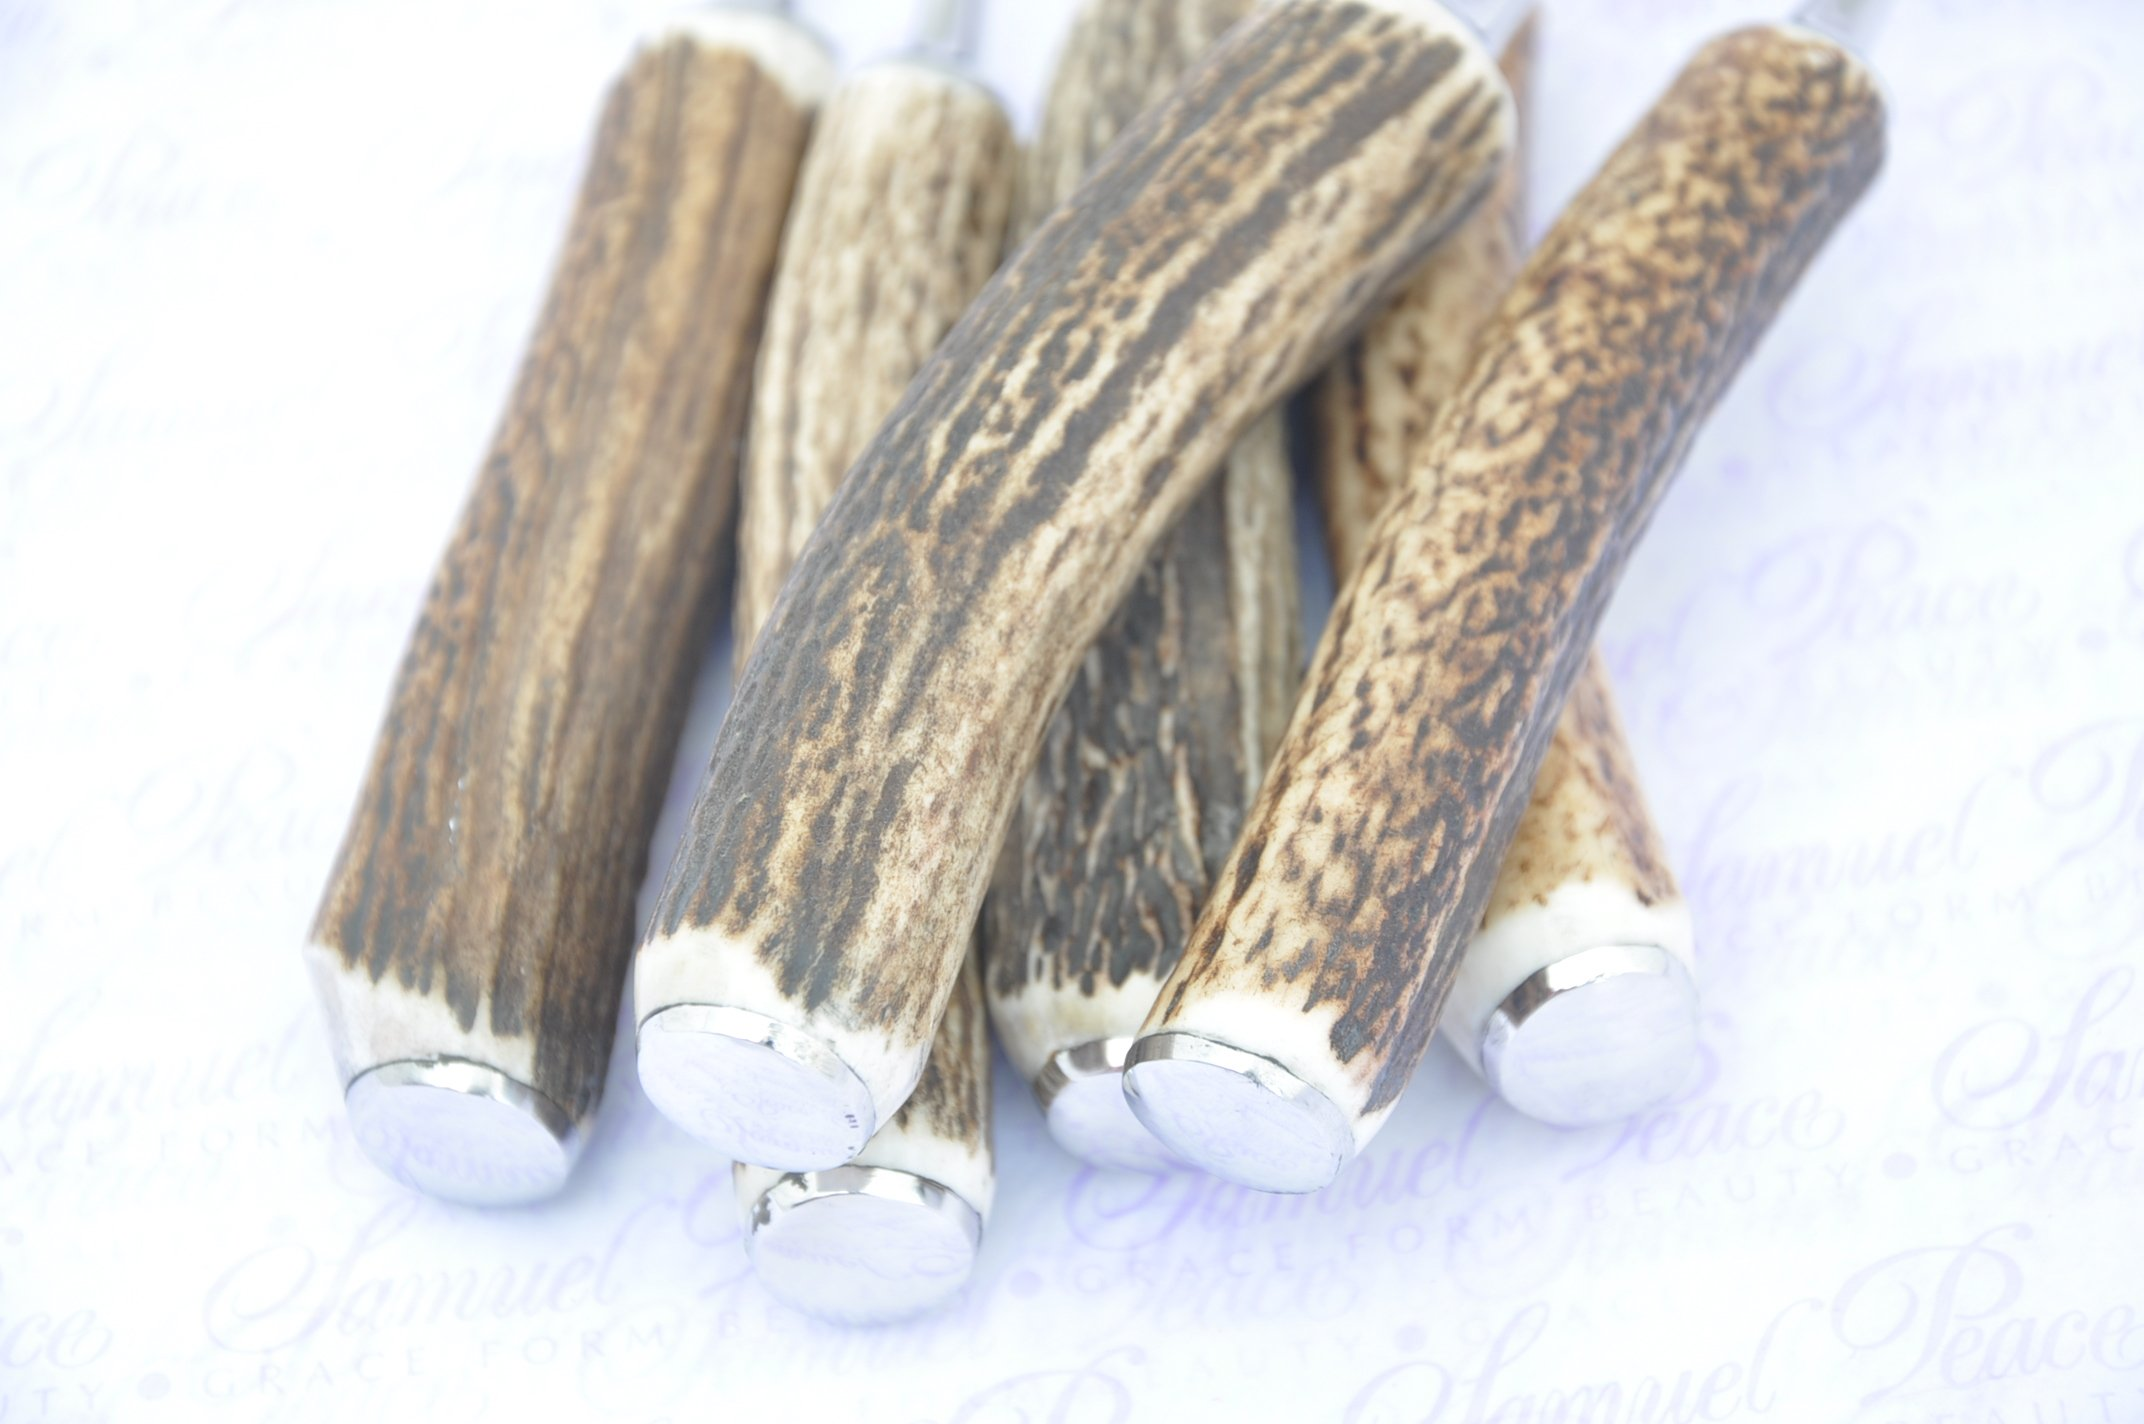 Six Genuine Stag Horn/Antler Handle Table Forks Boxed Made In Sheffield England by Sheffieldcutleryshop (Image #9)